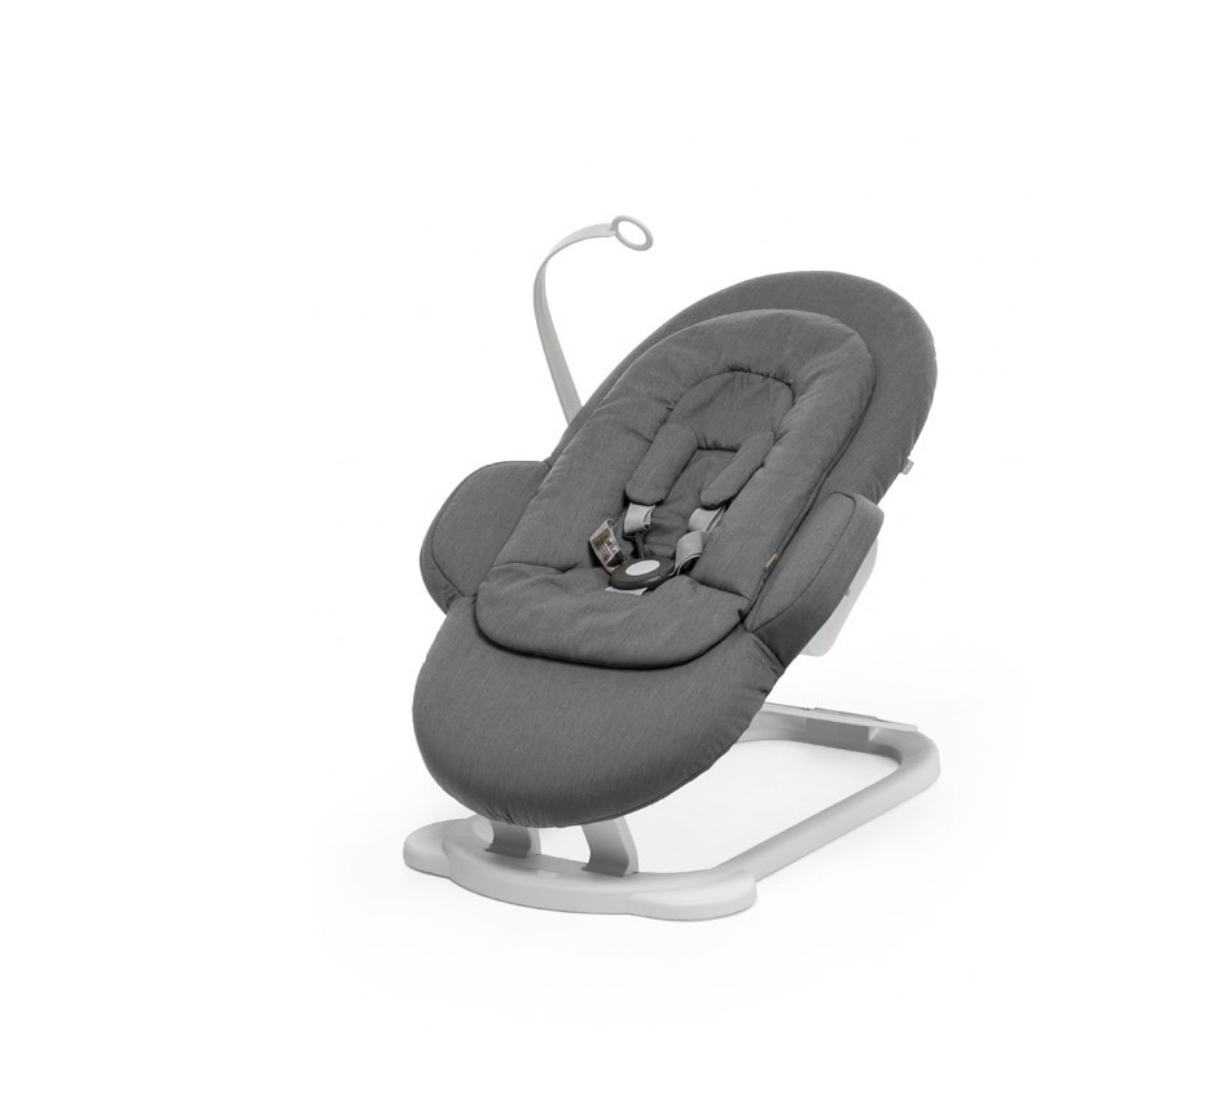 Recalled Stokke Bouncer